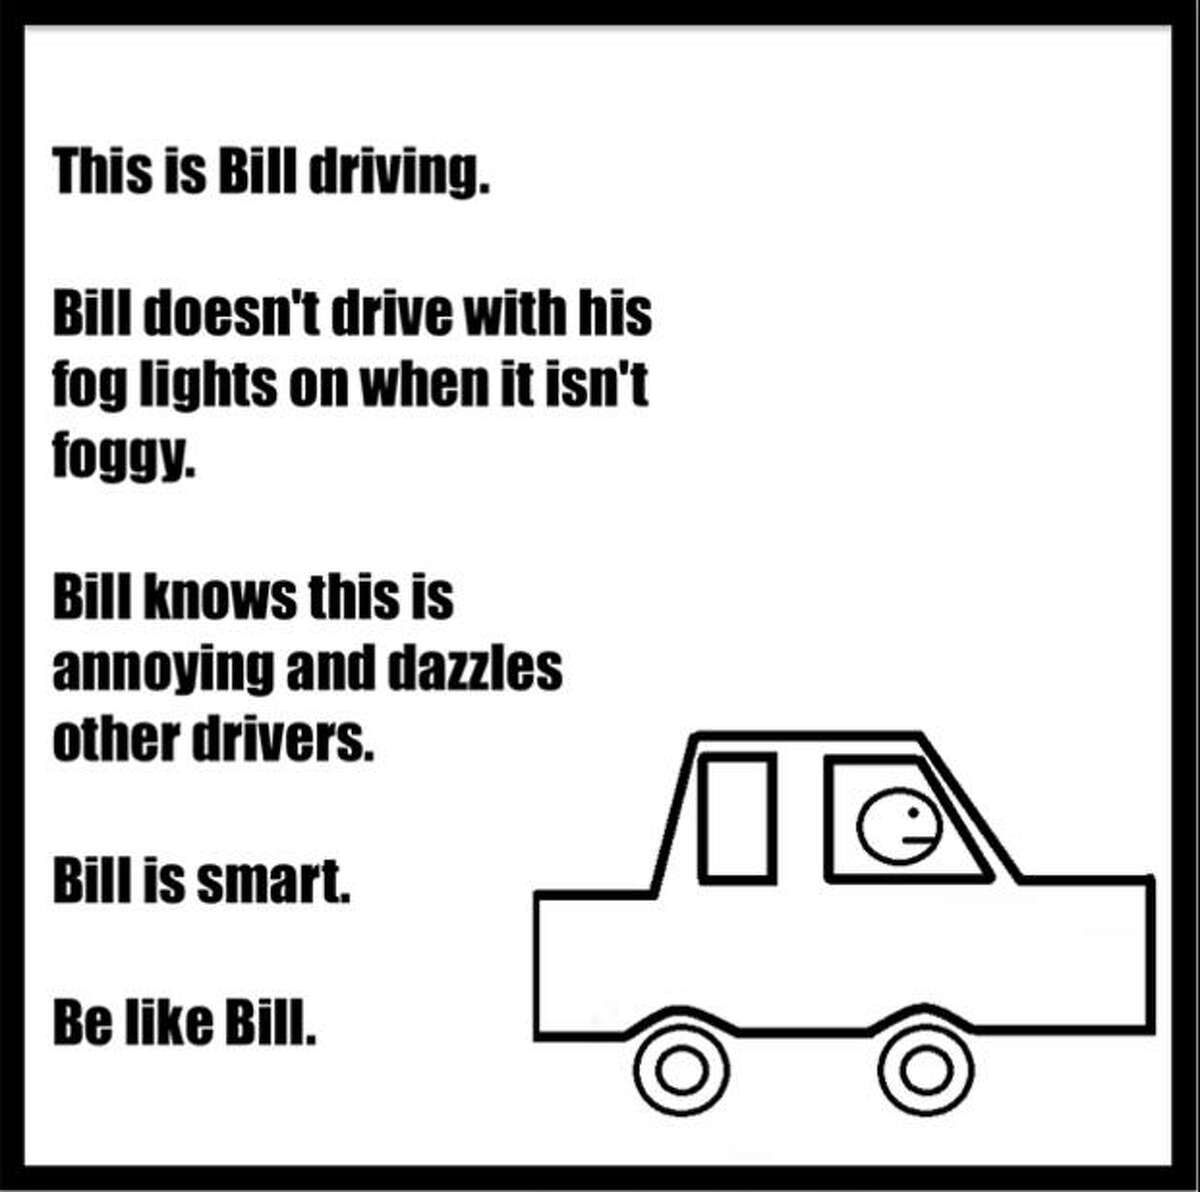 """""""Be like Bill"""" memes have gone viral to tell people what annoys them in the most passive aggressive way."""